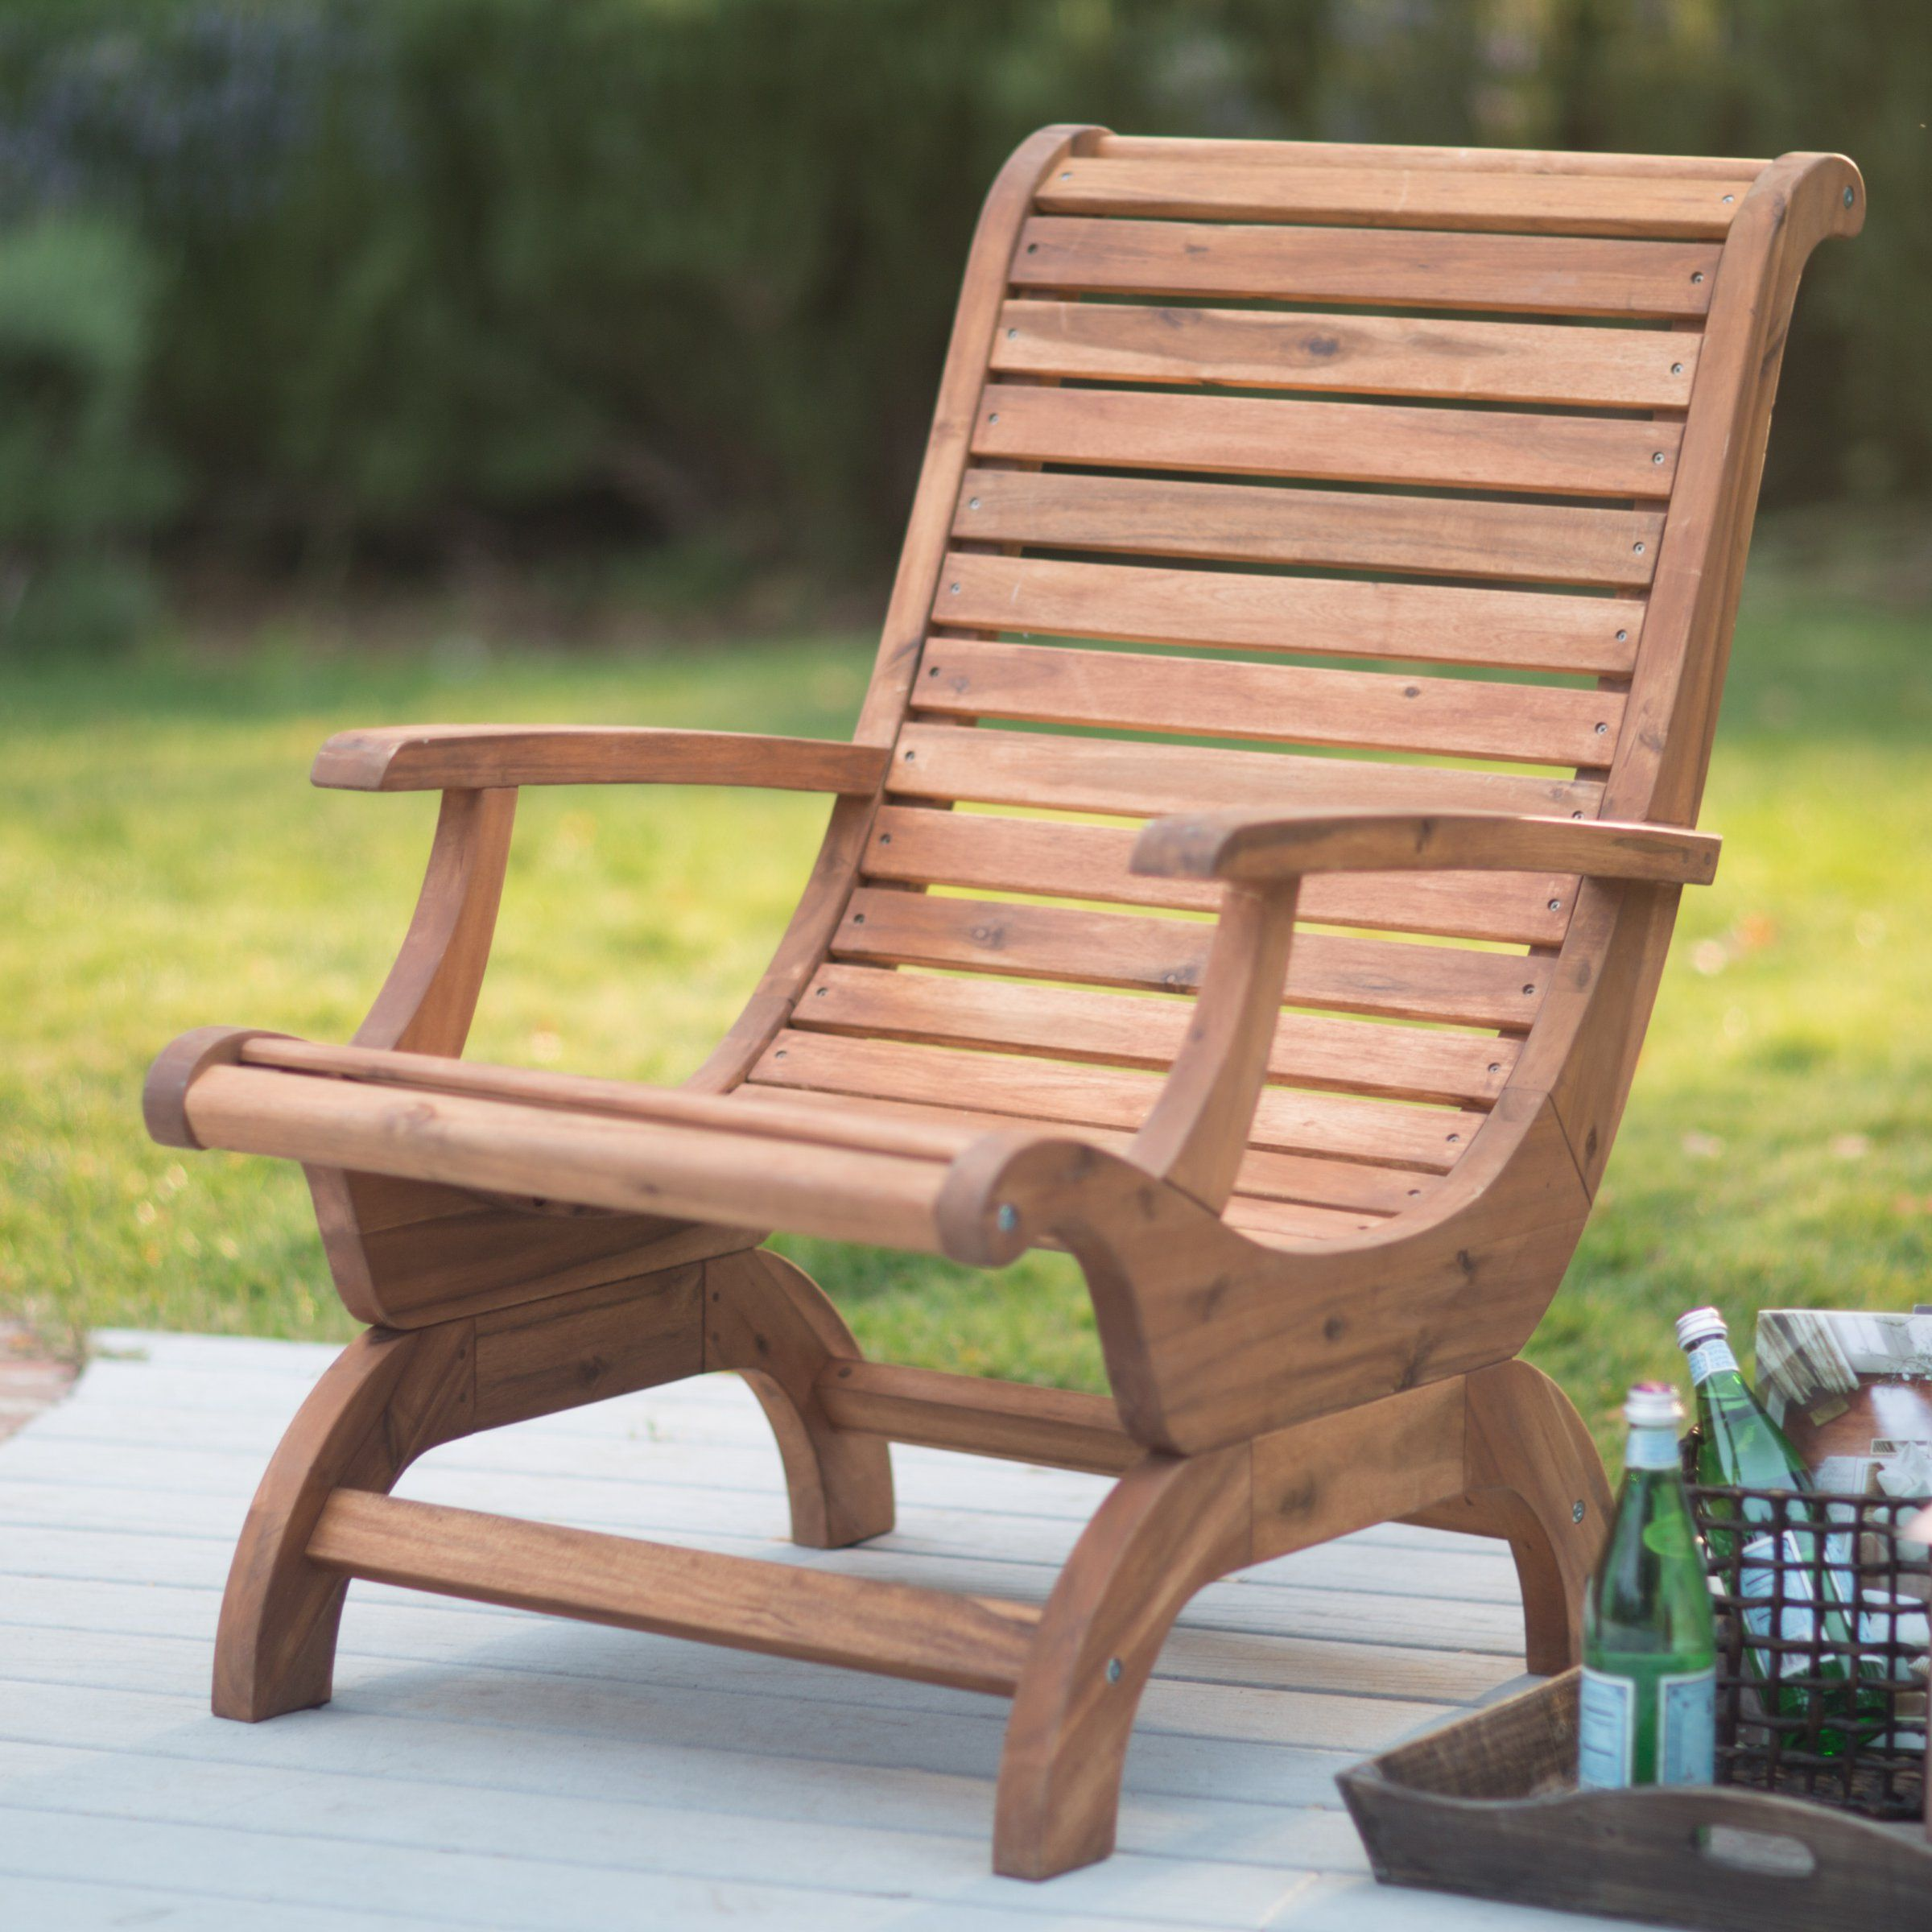 Belham Living Avondale Adirondack Chair - Natural - Adirondack ...